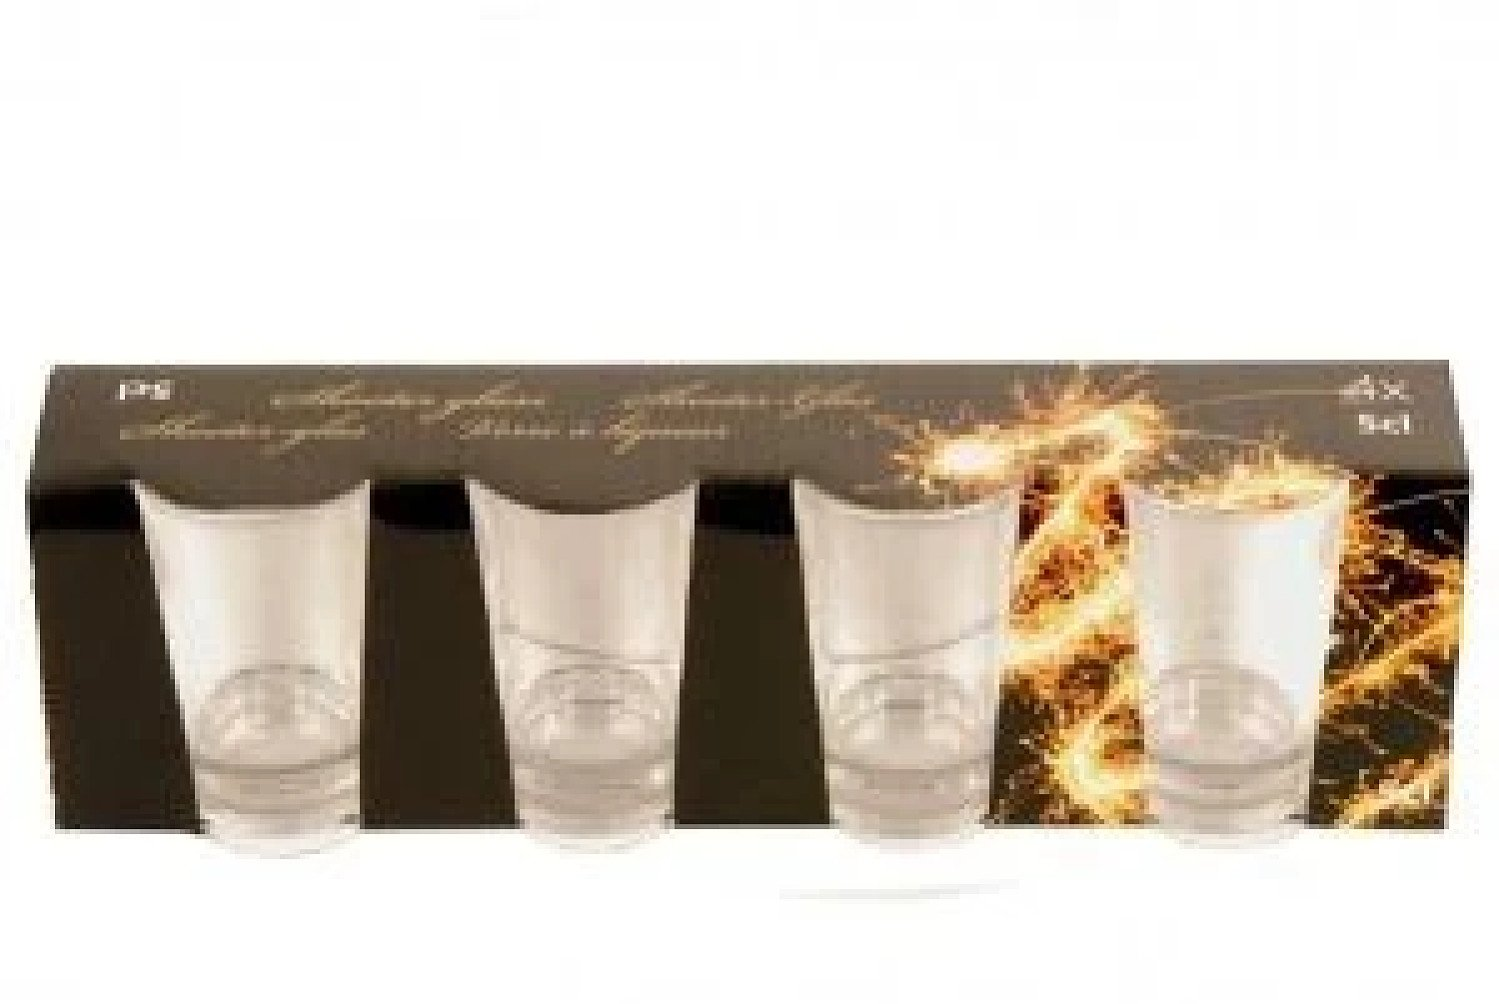 4 Piece Shot Glass Set 5cl for Whisky Vodka Rum Cordials Glasses £12.99 Free Postage